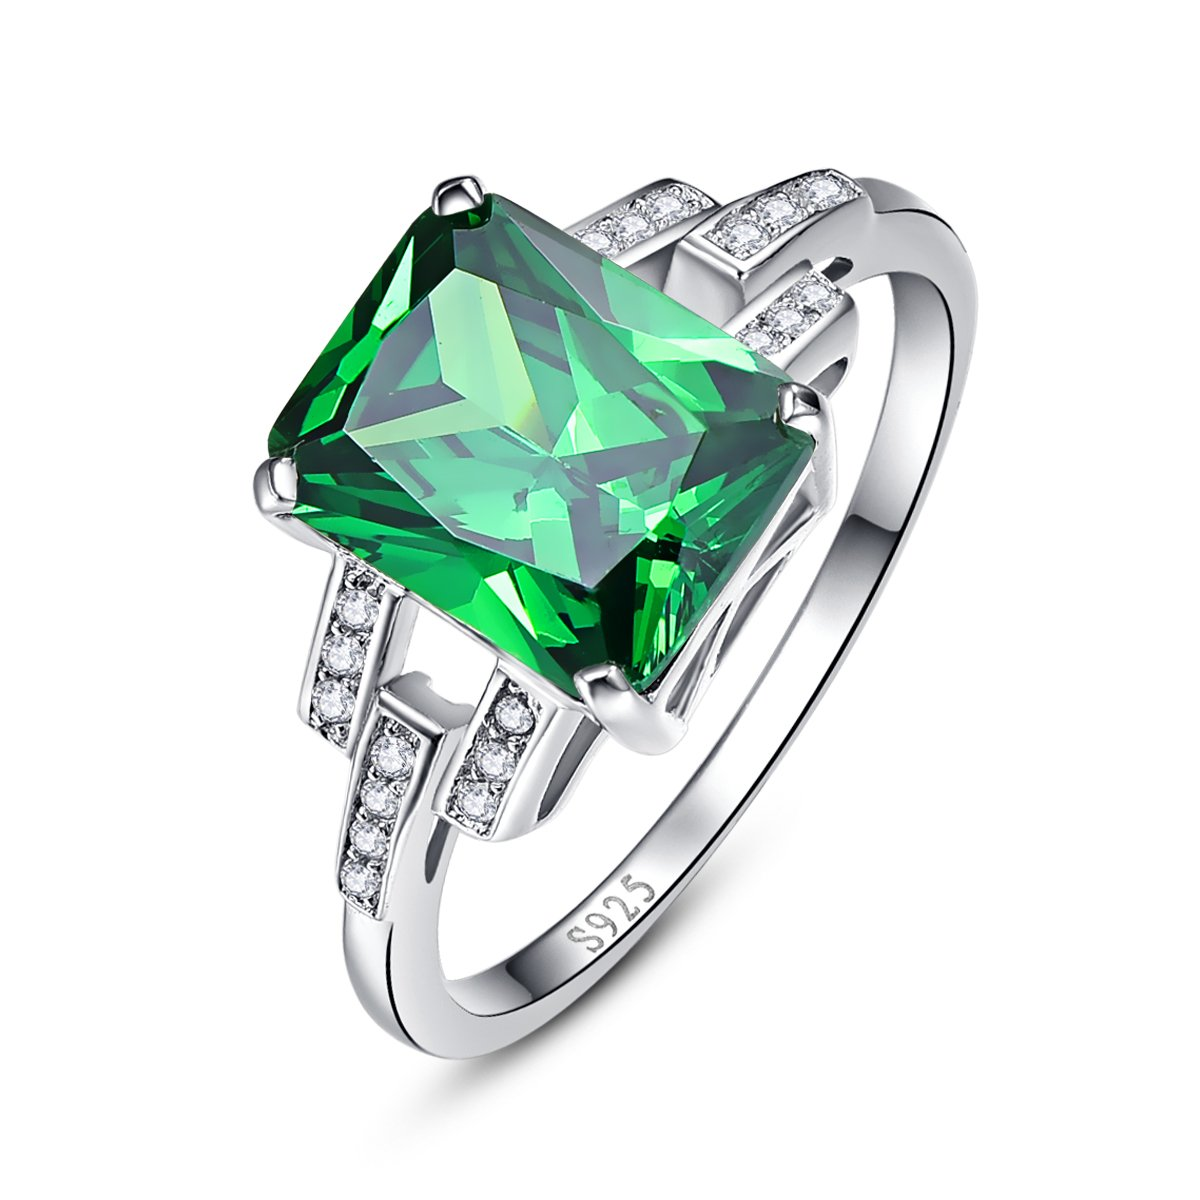 BONLAVIE Women's Square Cut Created Green Emerald 925 Sterling Silver Wedding Anniversary Engagement Ring 039R14